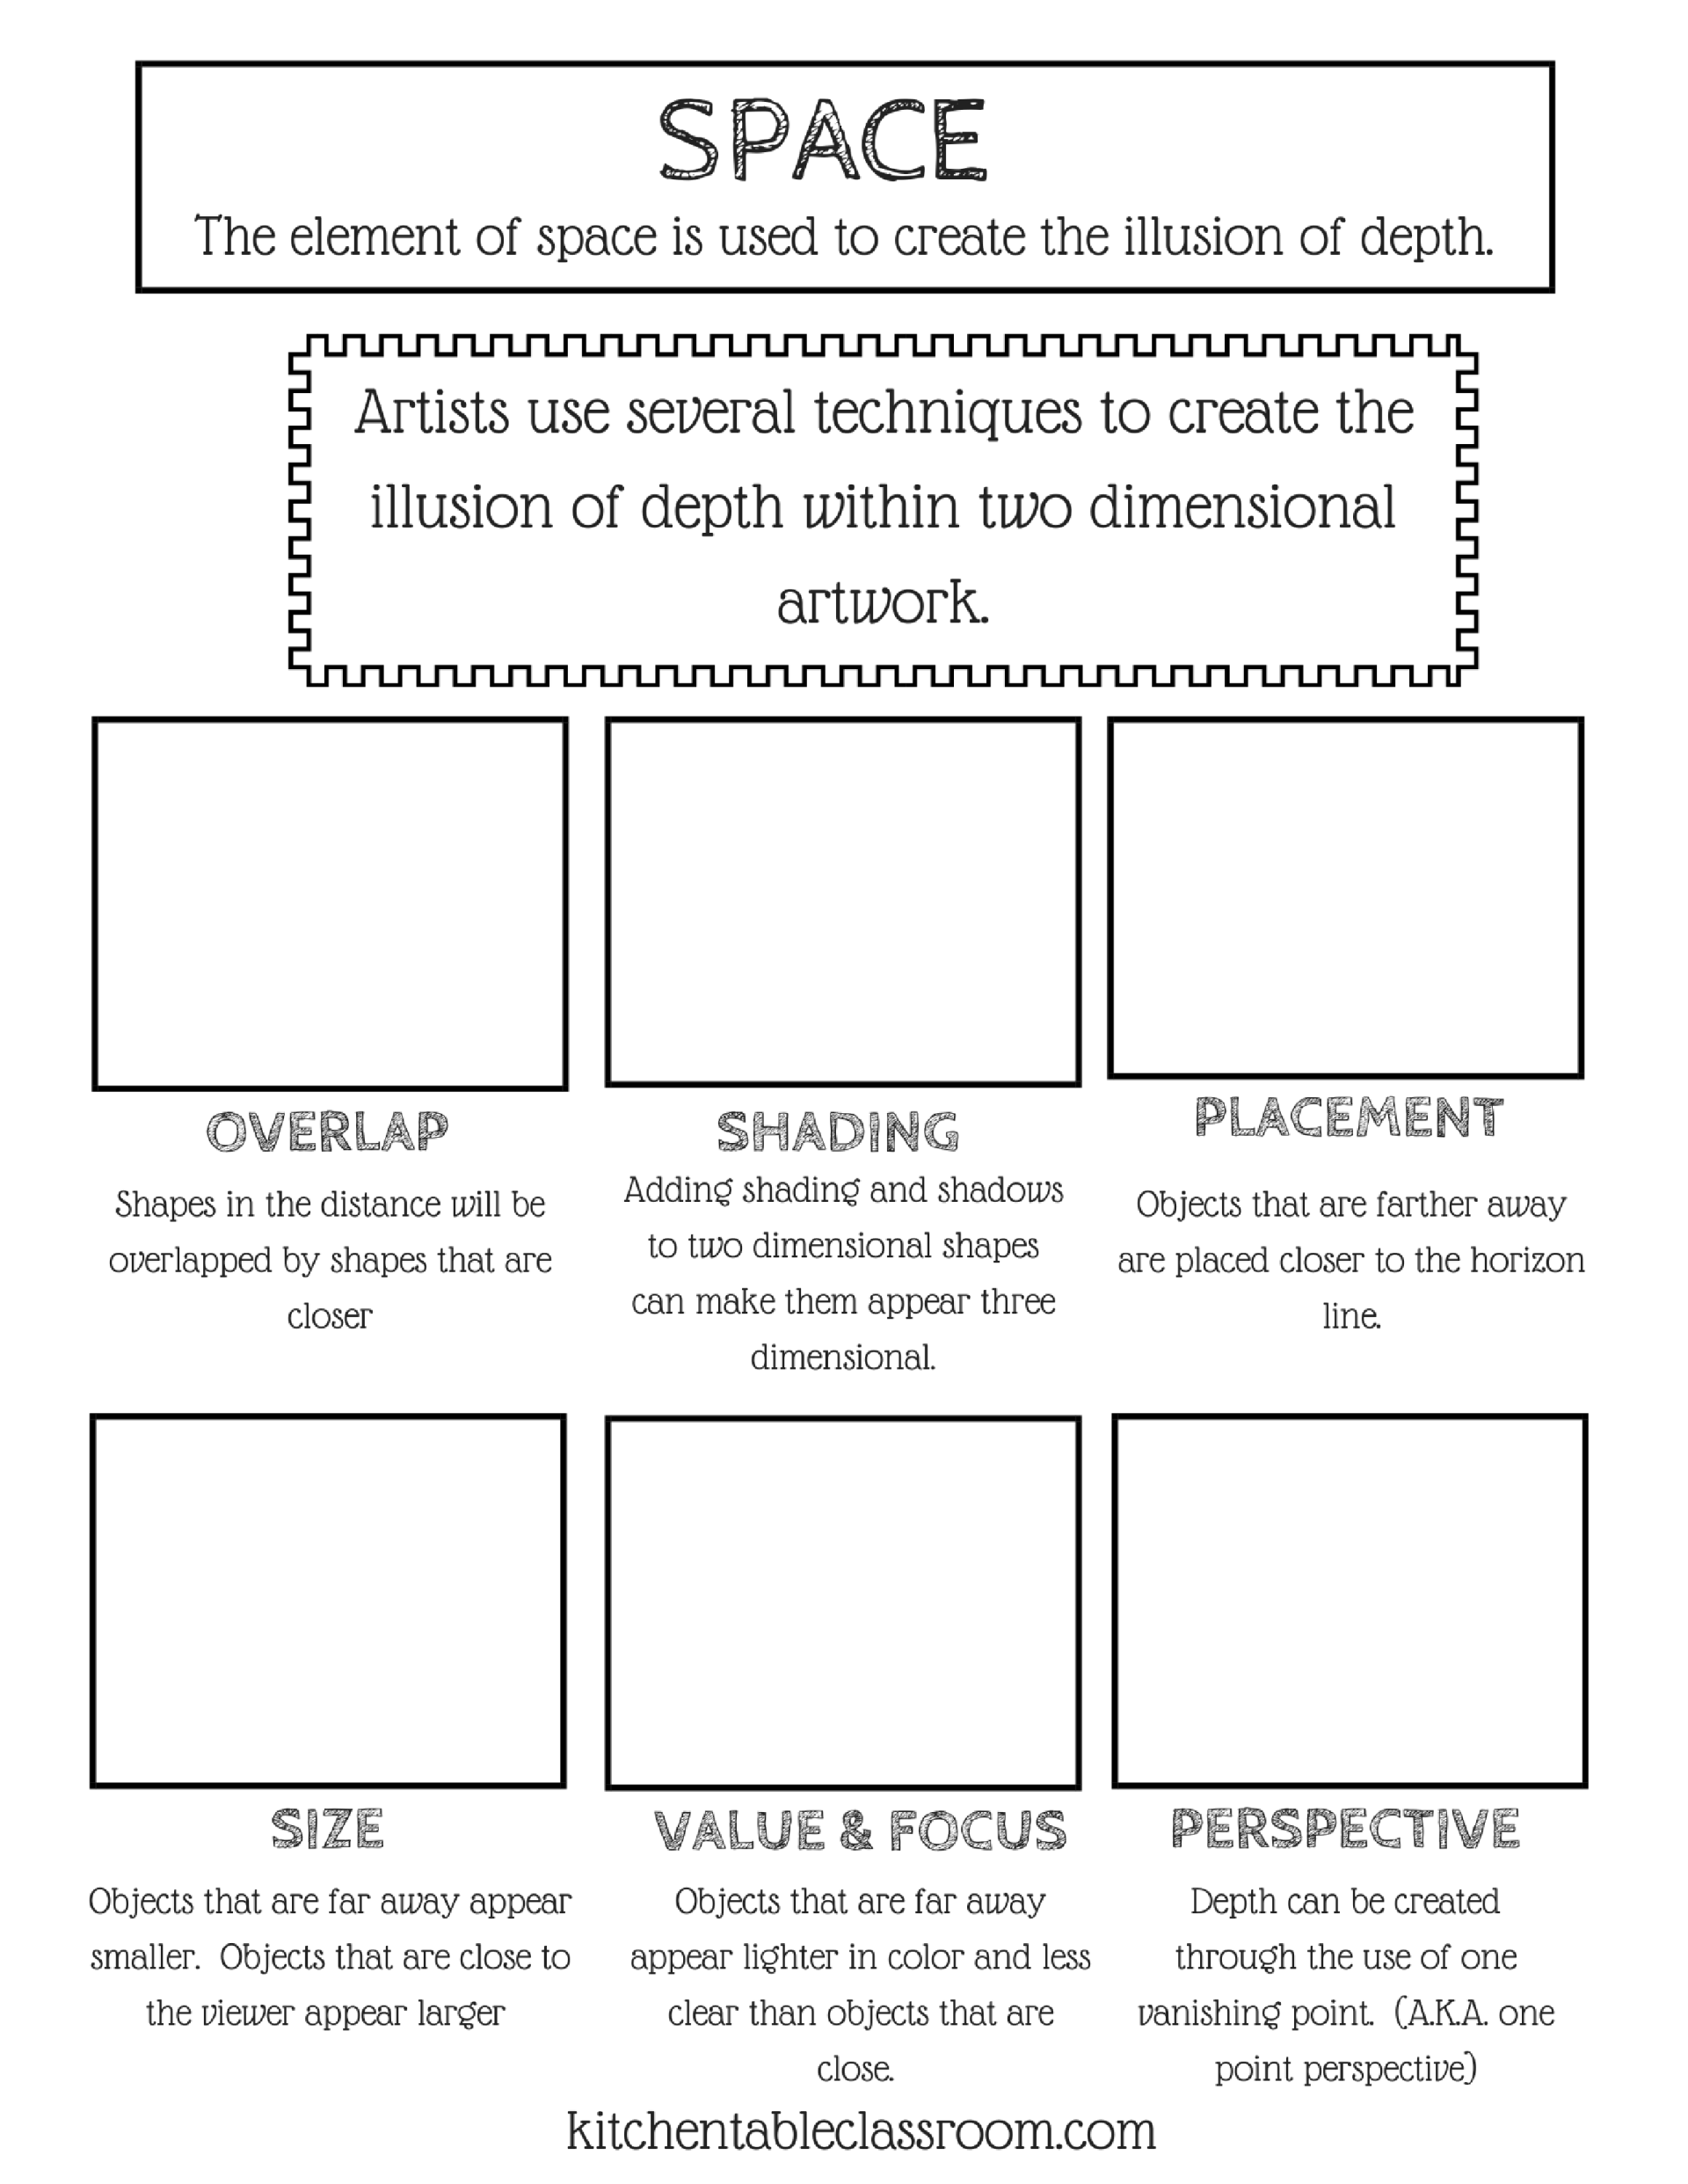 Introduction To The Element Of Space With Free Printable